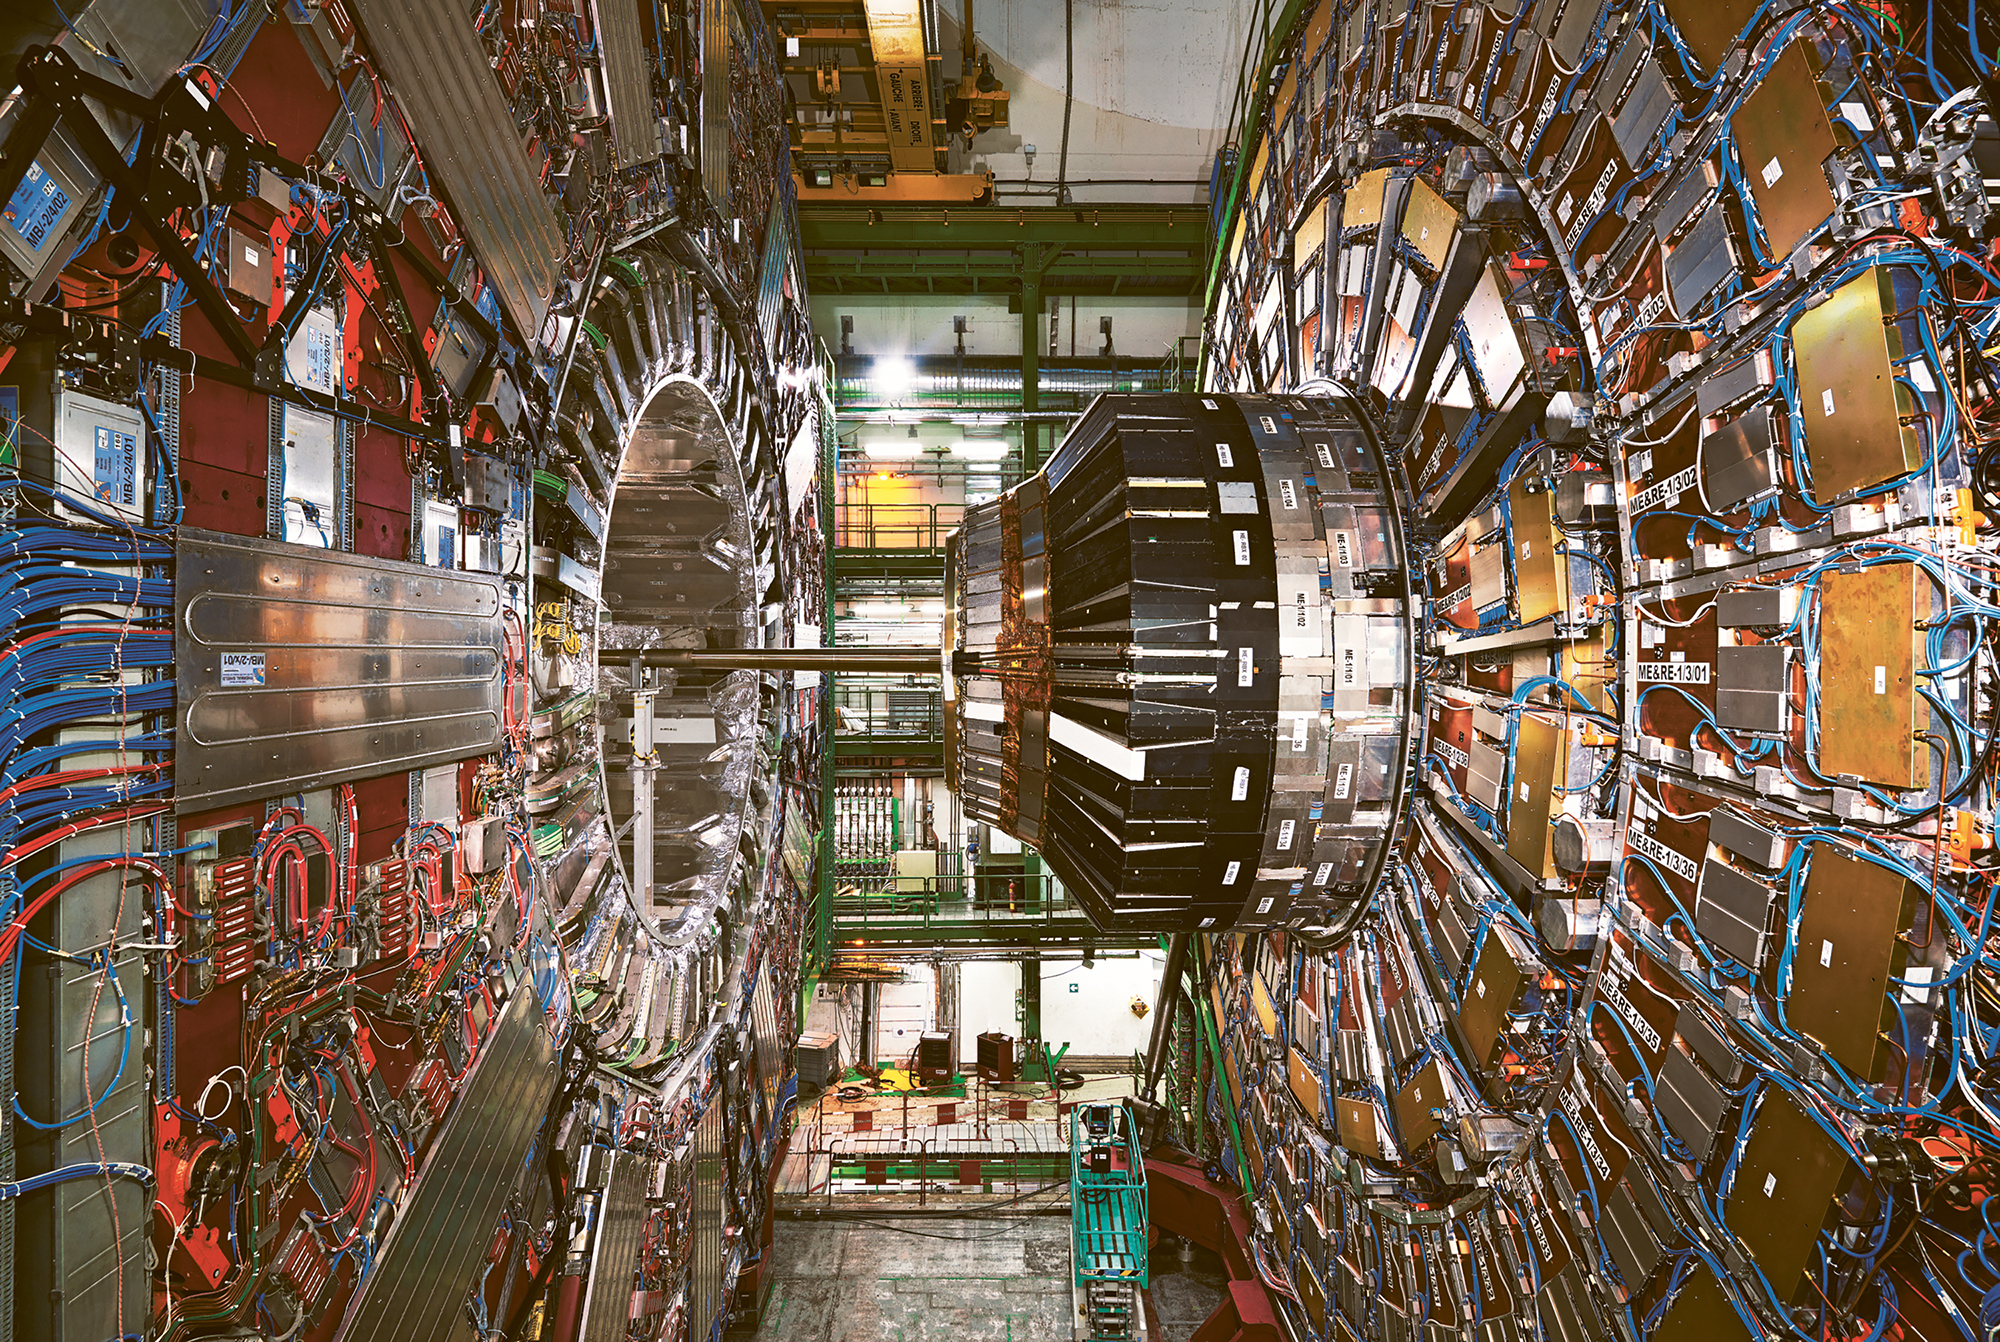 Enrico Sacchetti, CMS experiment at CERN's Large Hadron Collider the world's largest and most powerful particle collider located near Geneva, 2014; from  Seeing Science  (Aperture and University of Maryland, Baltimore County, 2019)